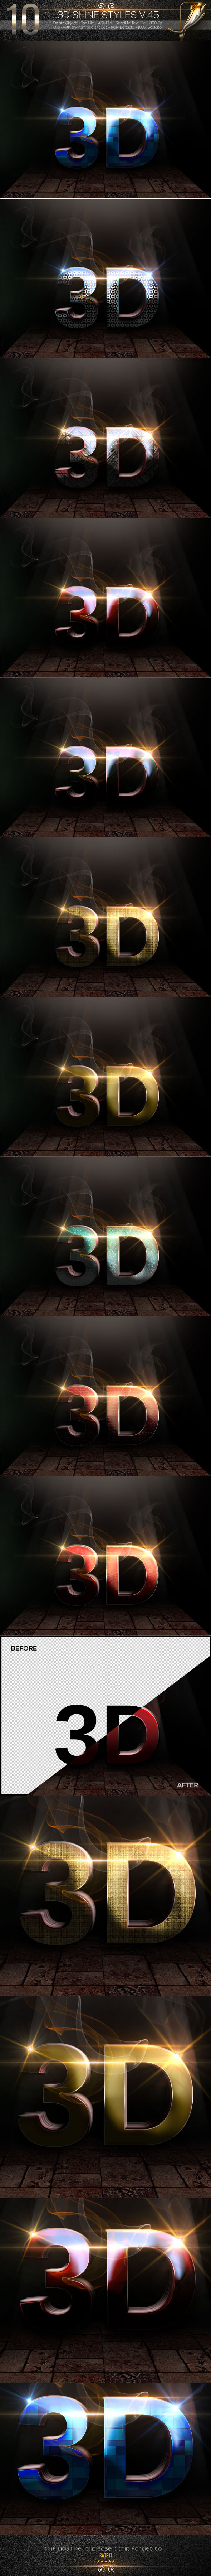 GraphicRiver 10 3D Text Styles V.45 11864120